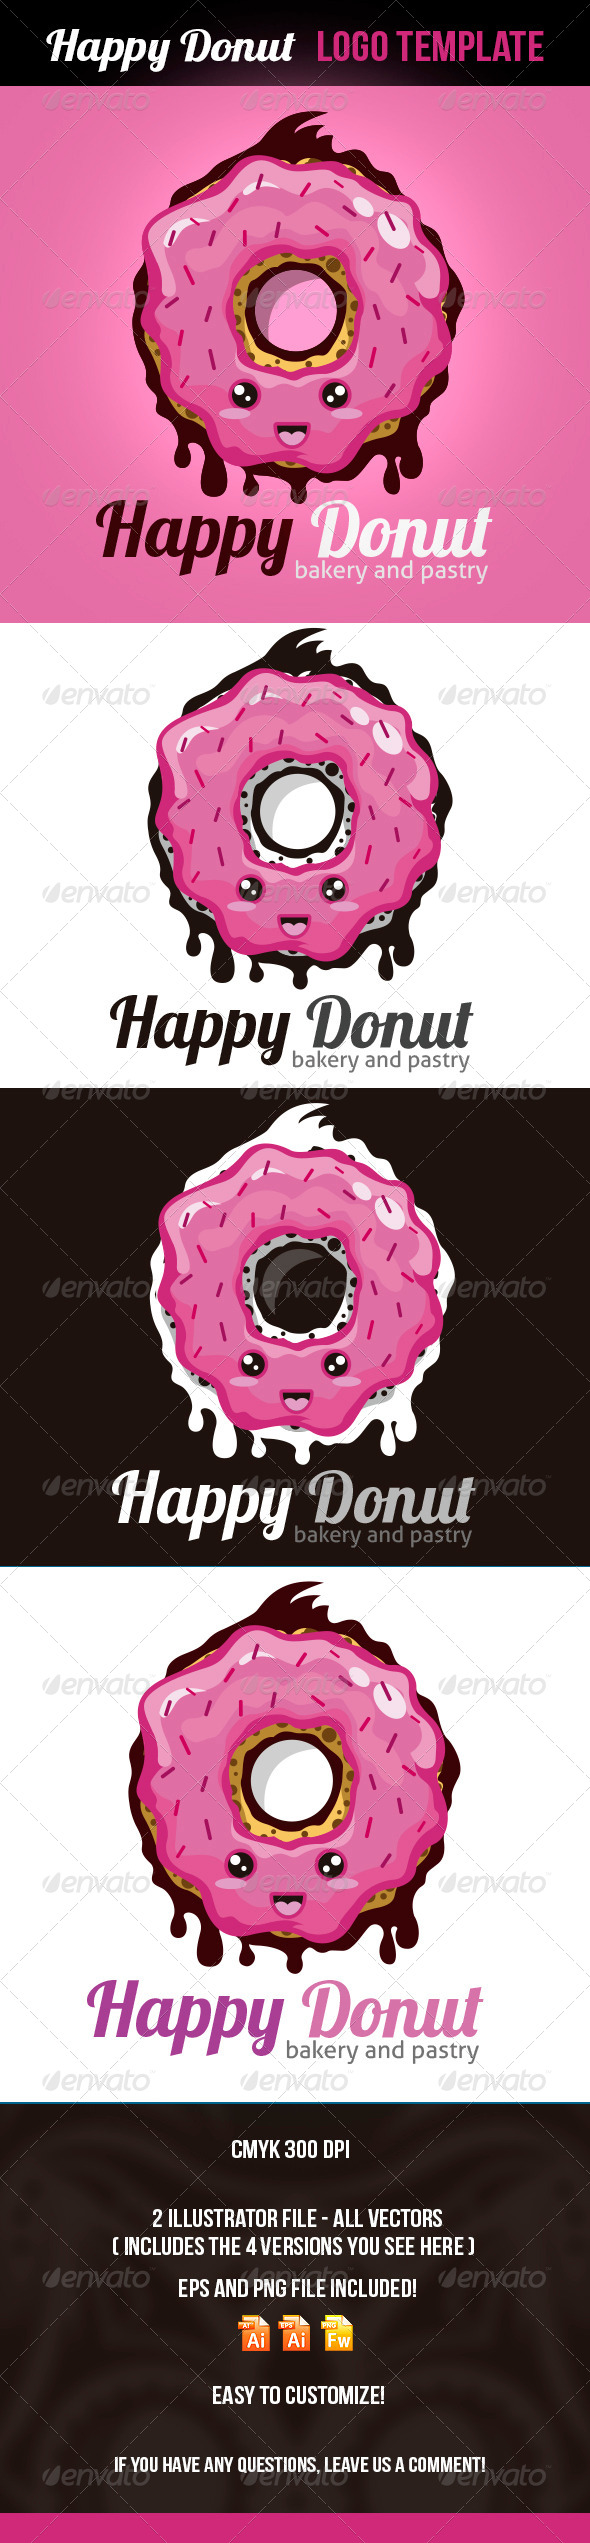 Happy Donut Logo Template - Food Logo Templates